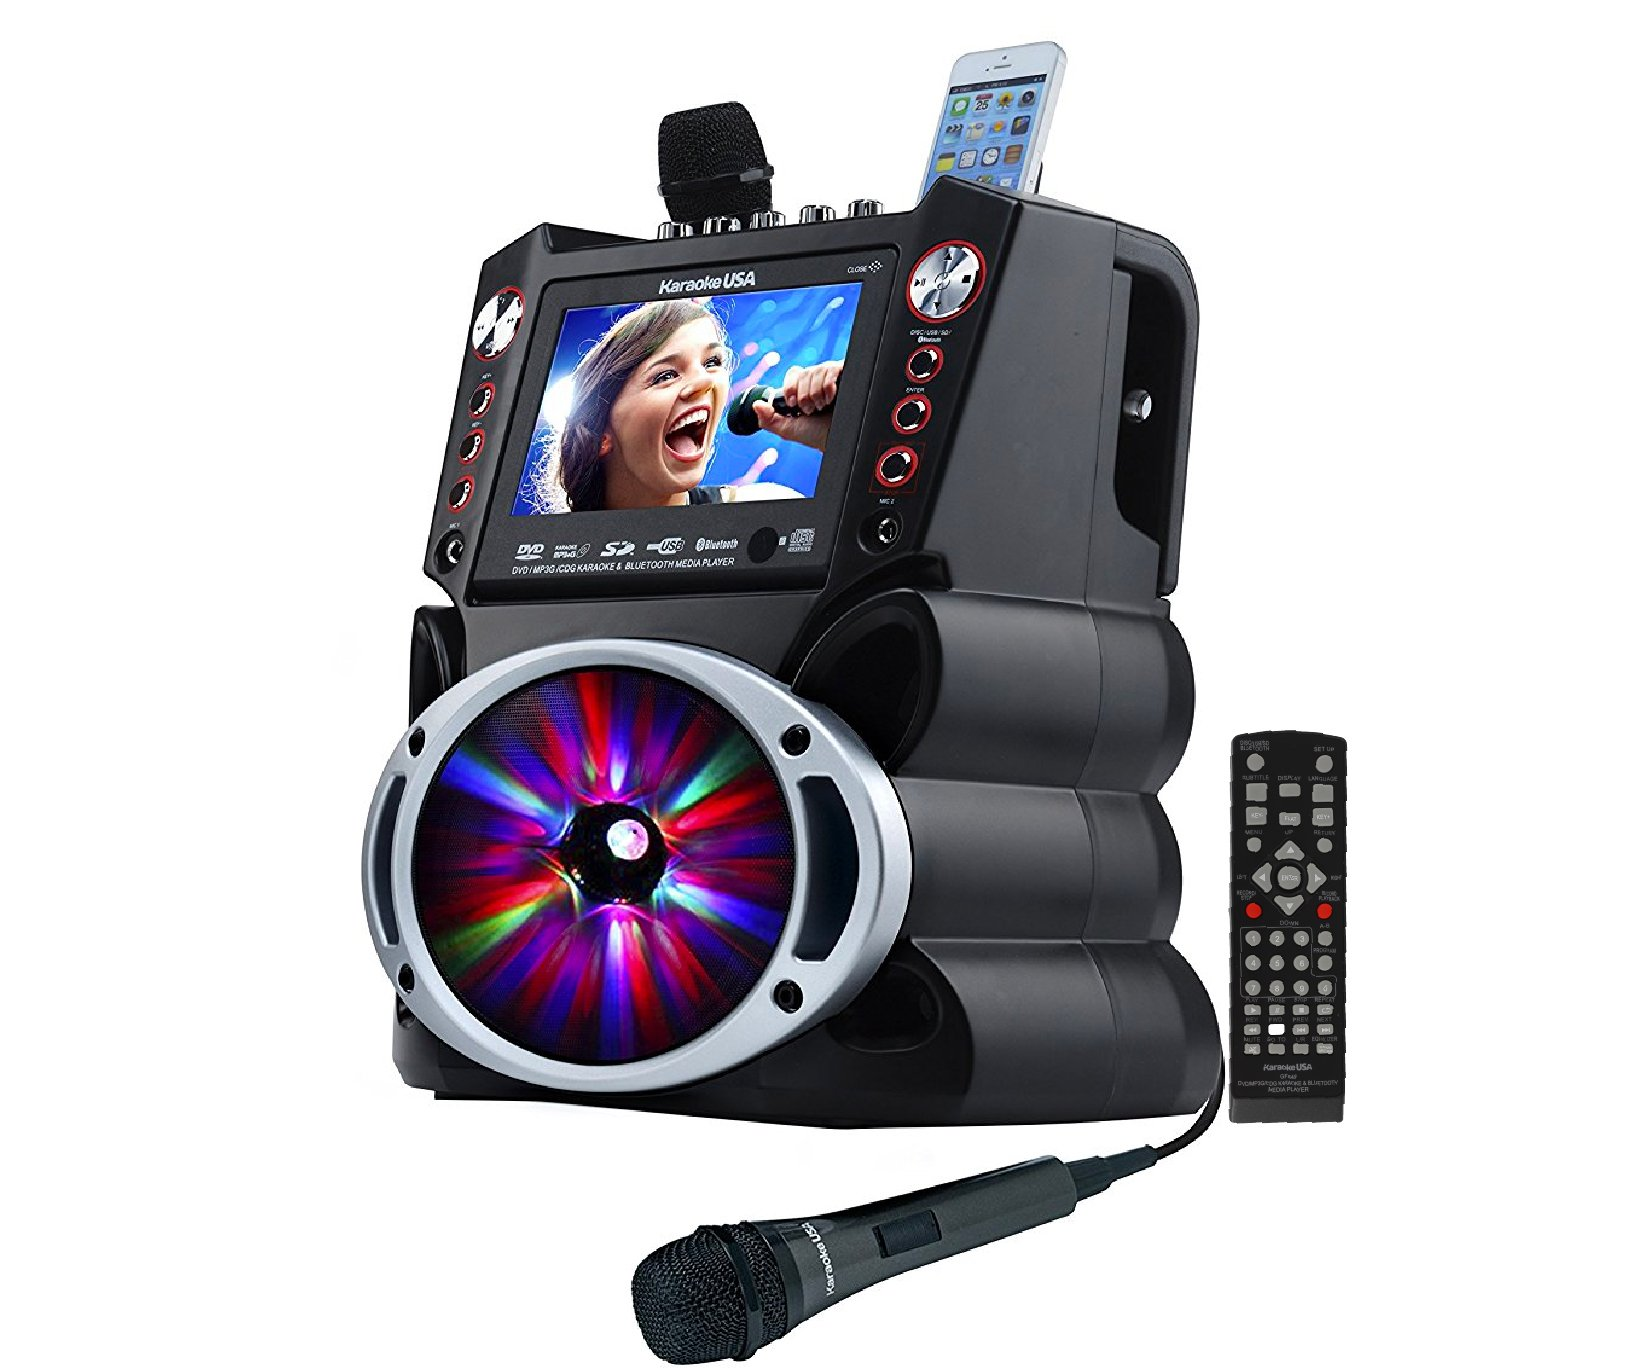 """Complete Karaoke System with 2 Microphones, Remote Control, 7"""" Color Display, LED Lights - Works with DVD, Bluetooth, CD, MP3 and All Devices - Karaoke USA Model GF845 by Karaoke USA"""